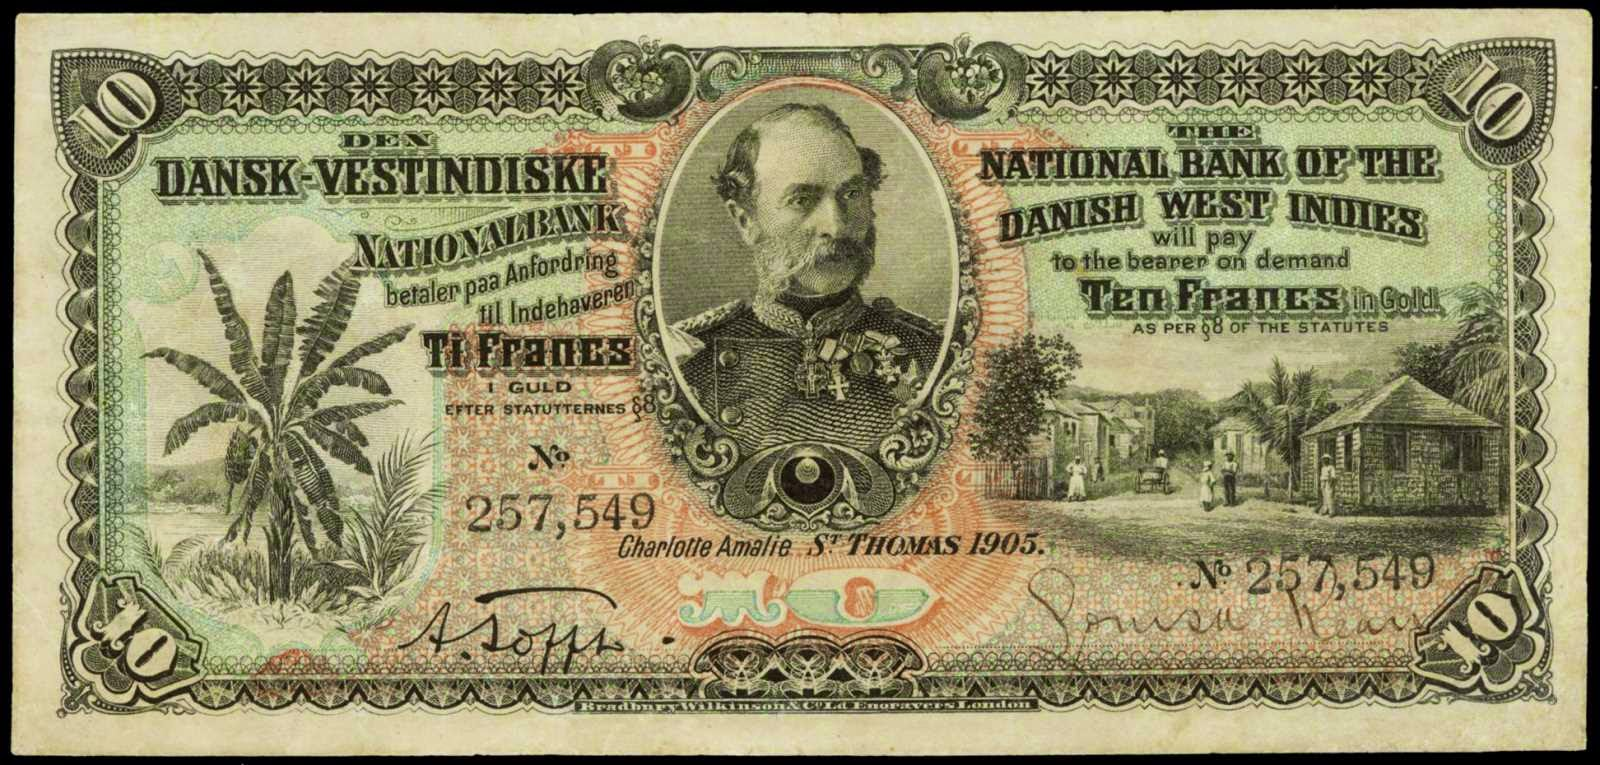 Danish West Indies banknotes 10 Francs in Gold note 1905